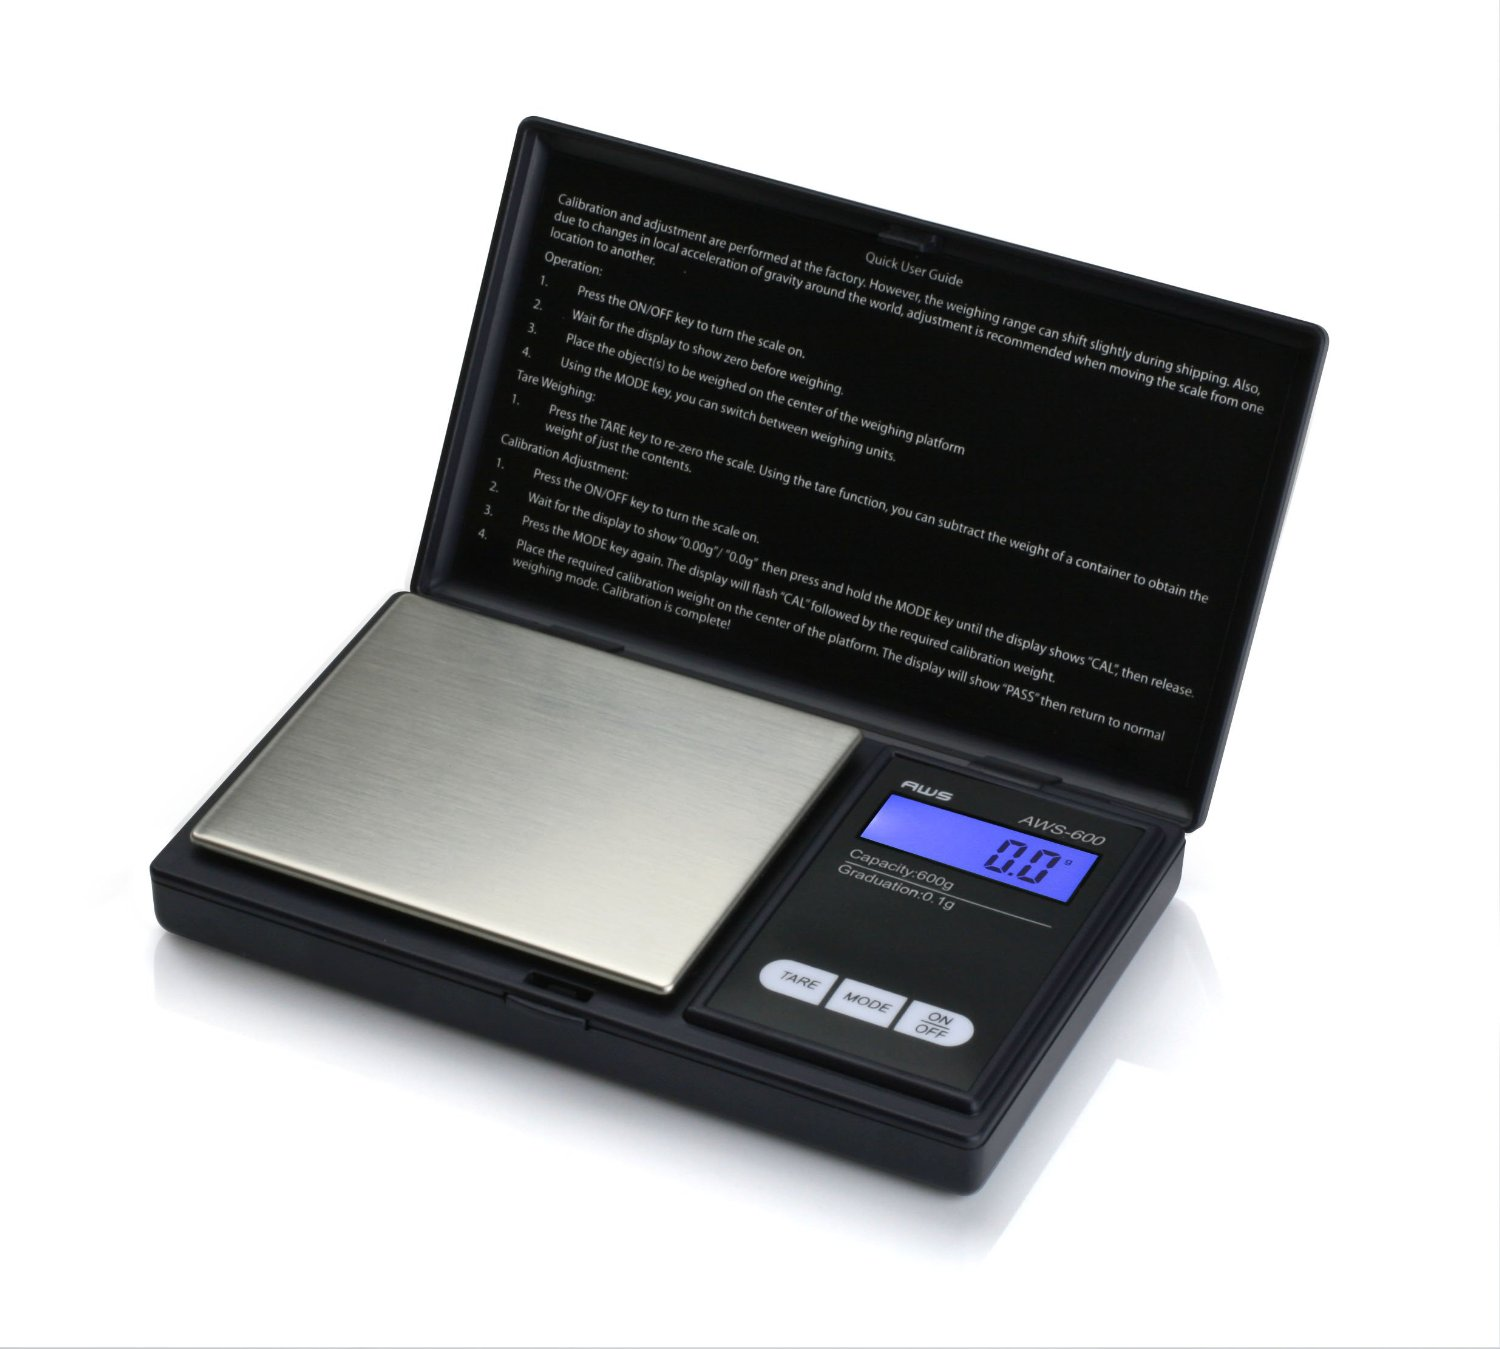 American Weigh Scales Digital Personal Nutrition Scale